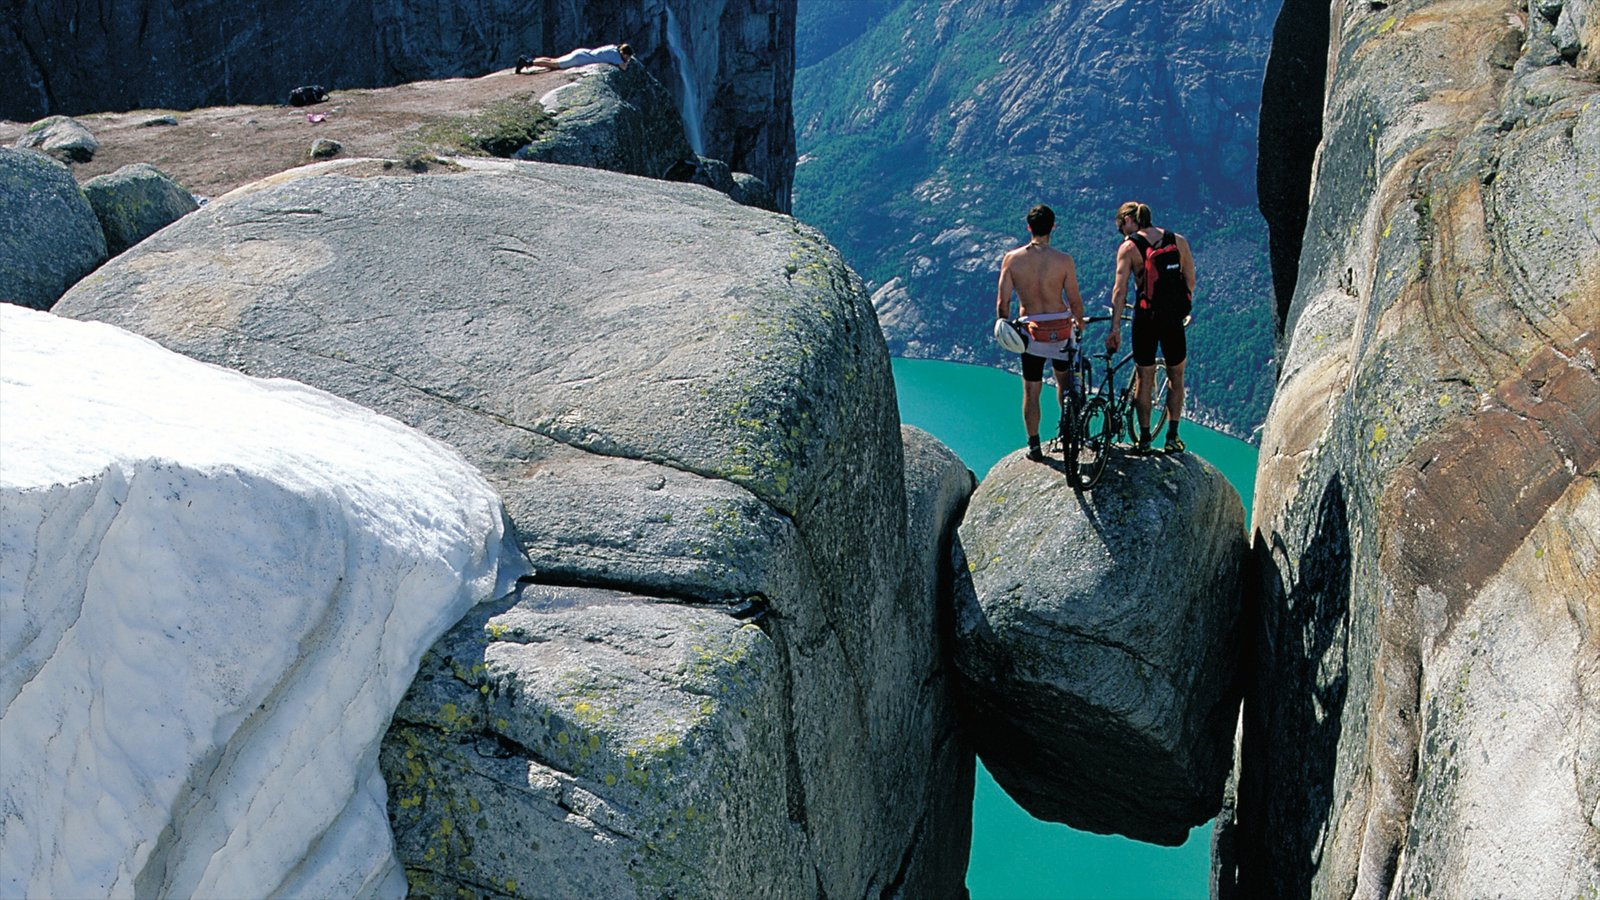 Kjerag showing mountains, views and hiking or walking